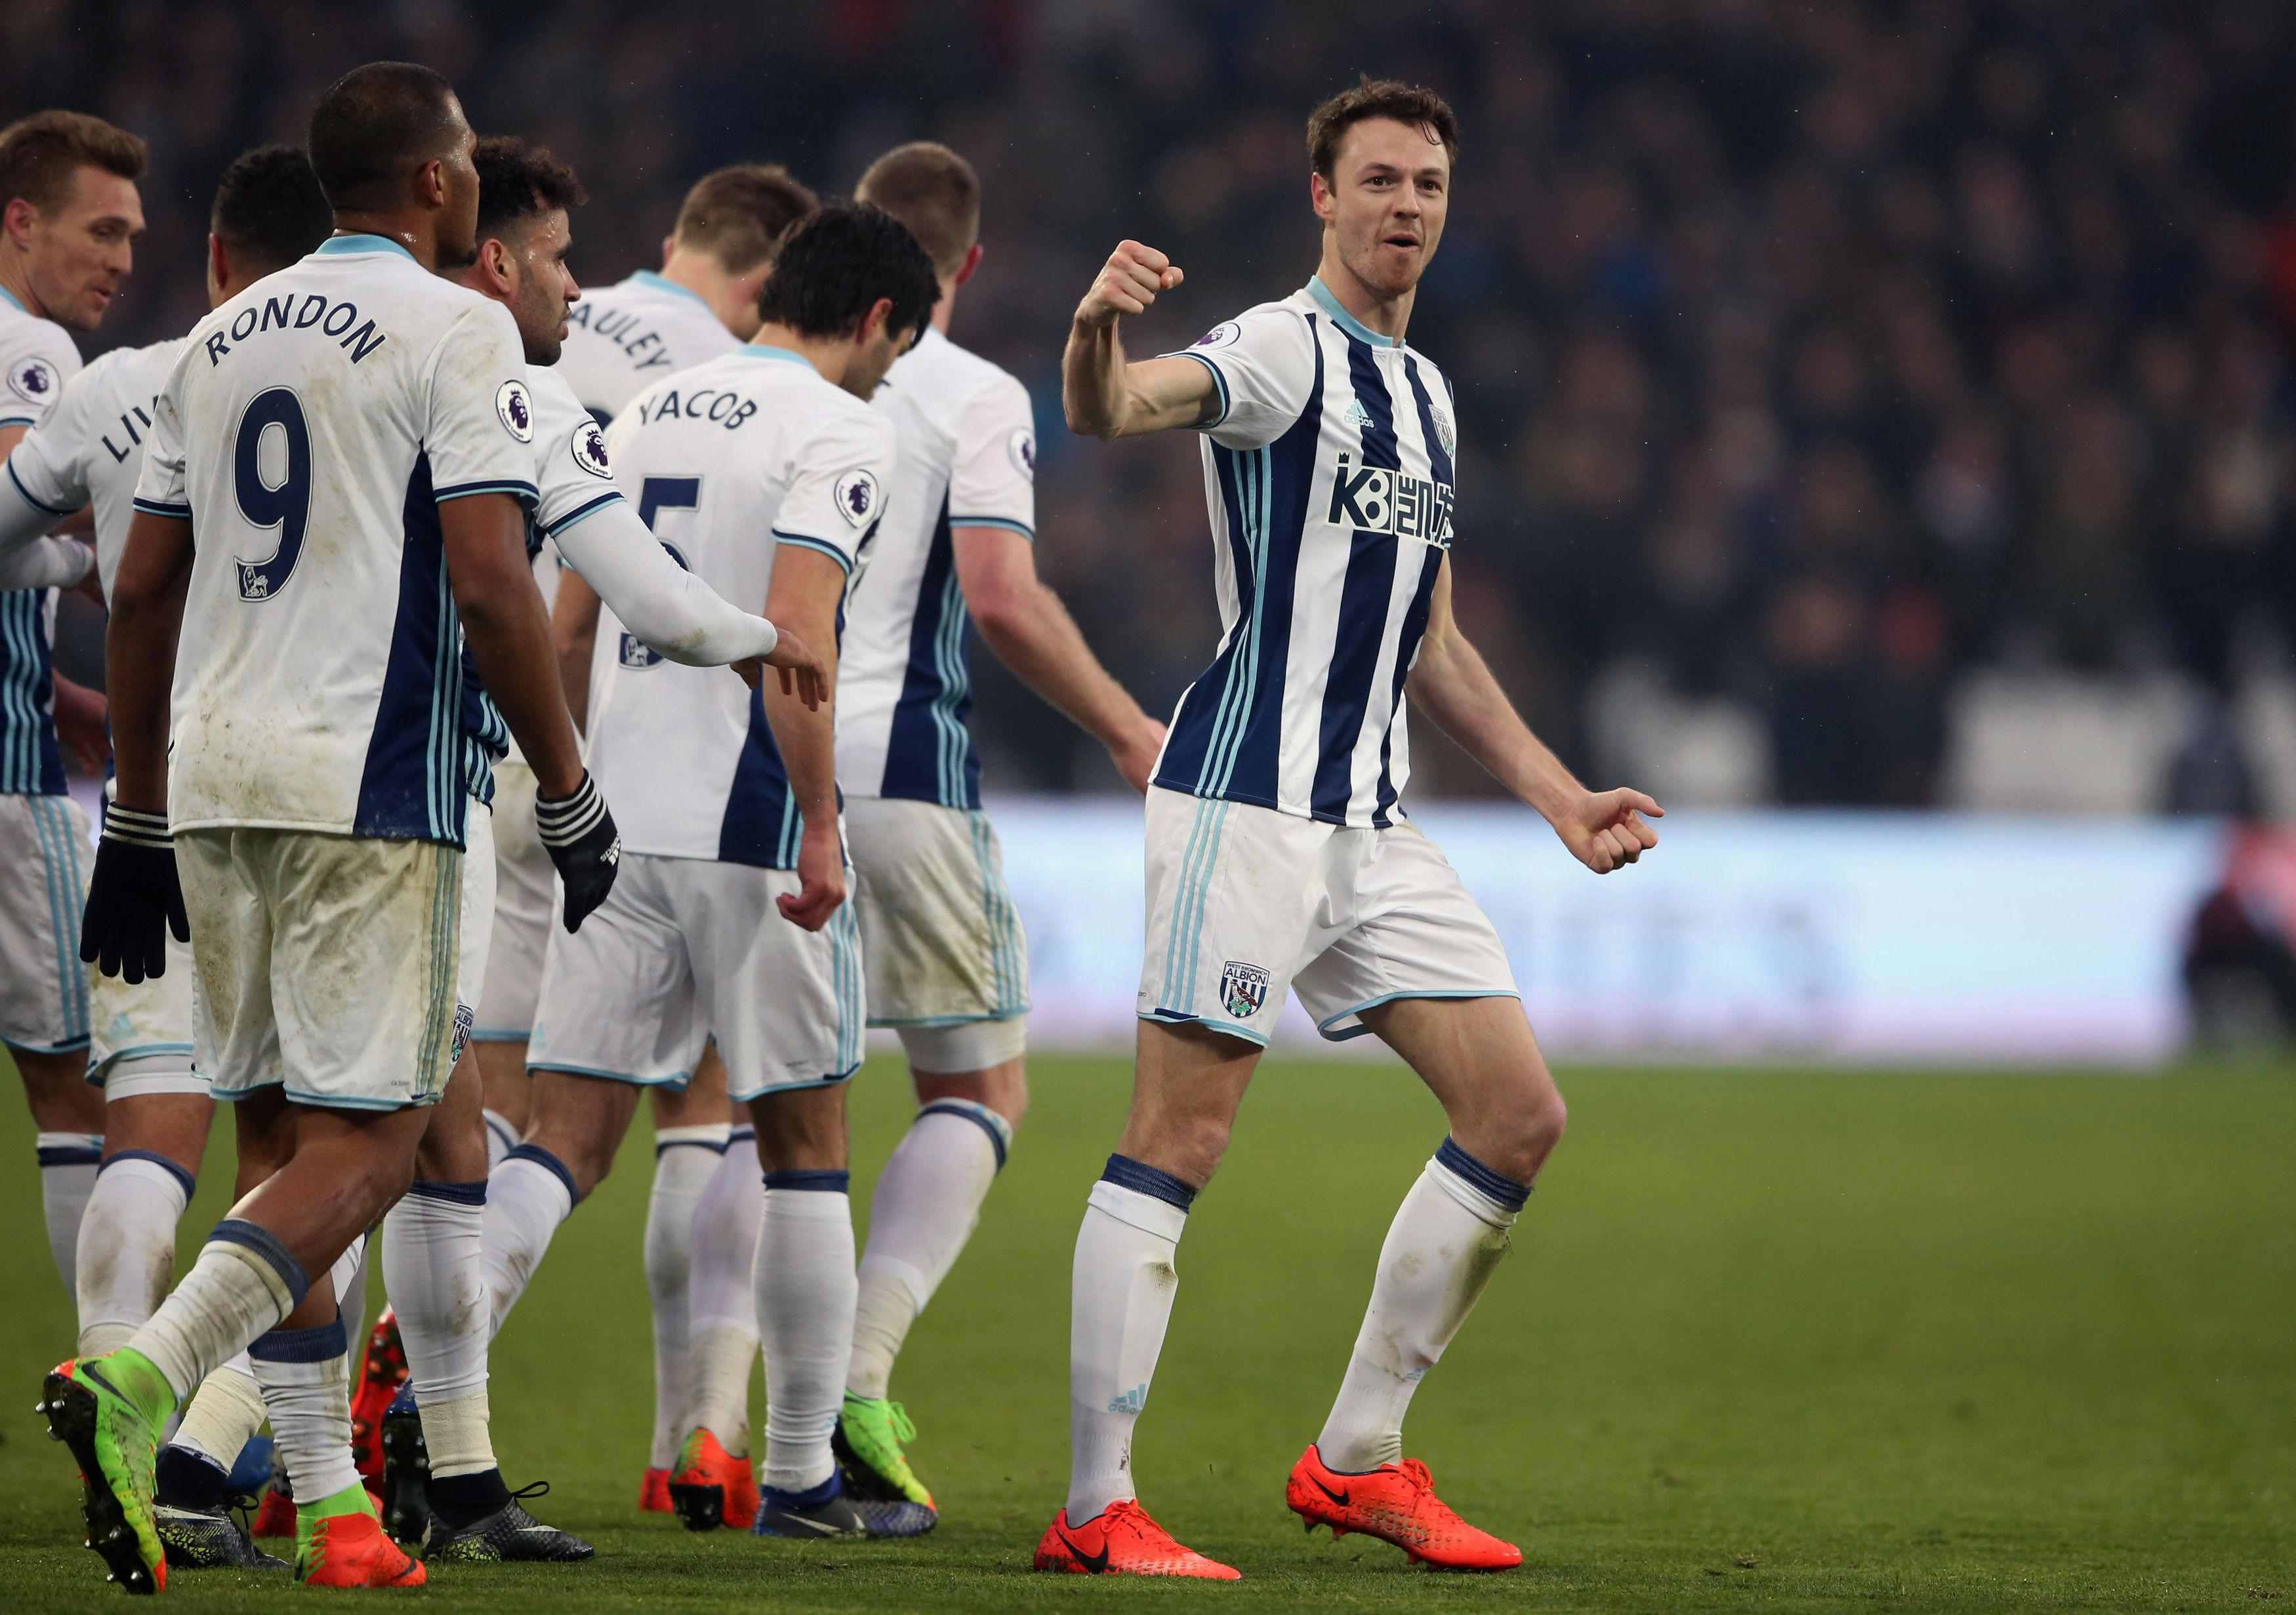 Jonny Evans is the leader of West Brom's rearguard